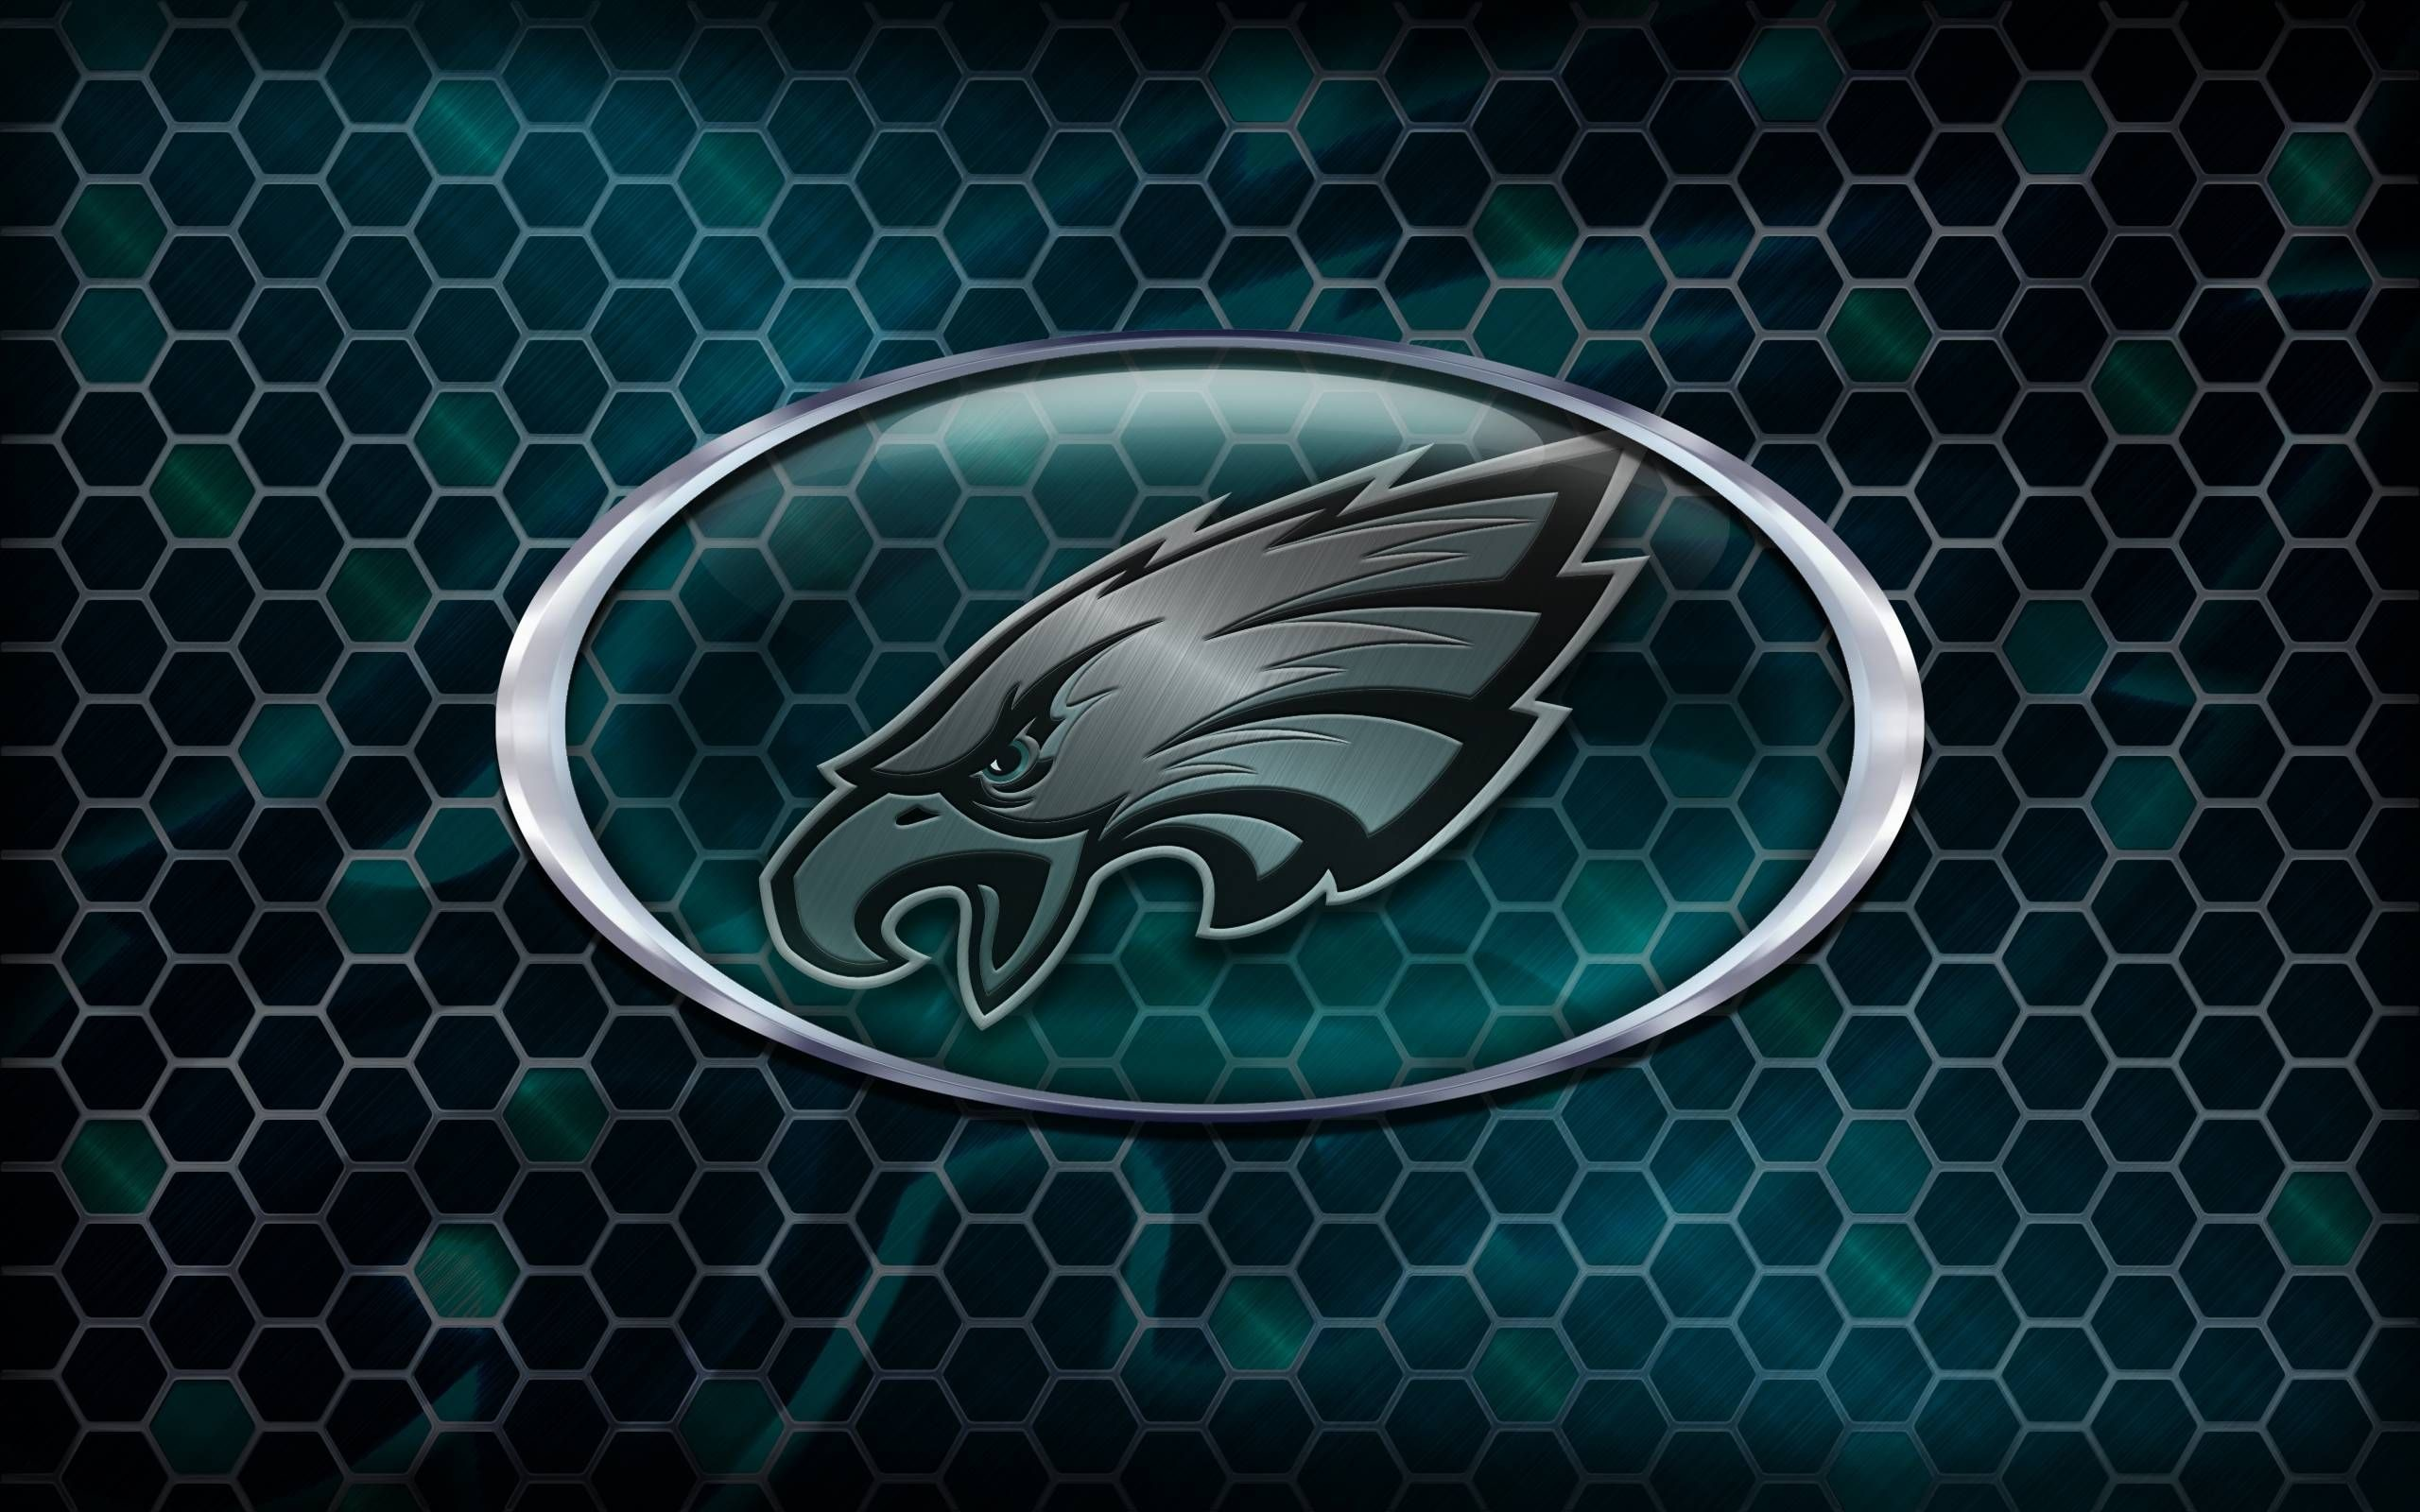 2560x1600 Philadelphia Eagles Wallpaper HD